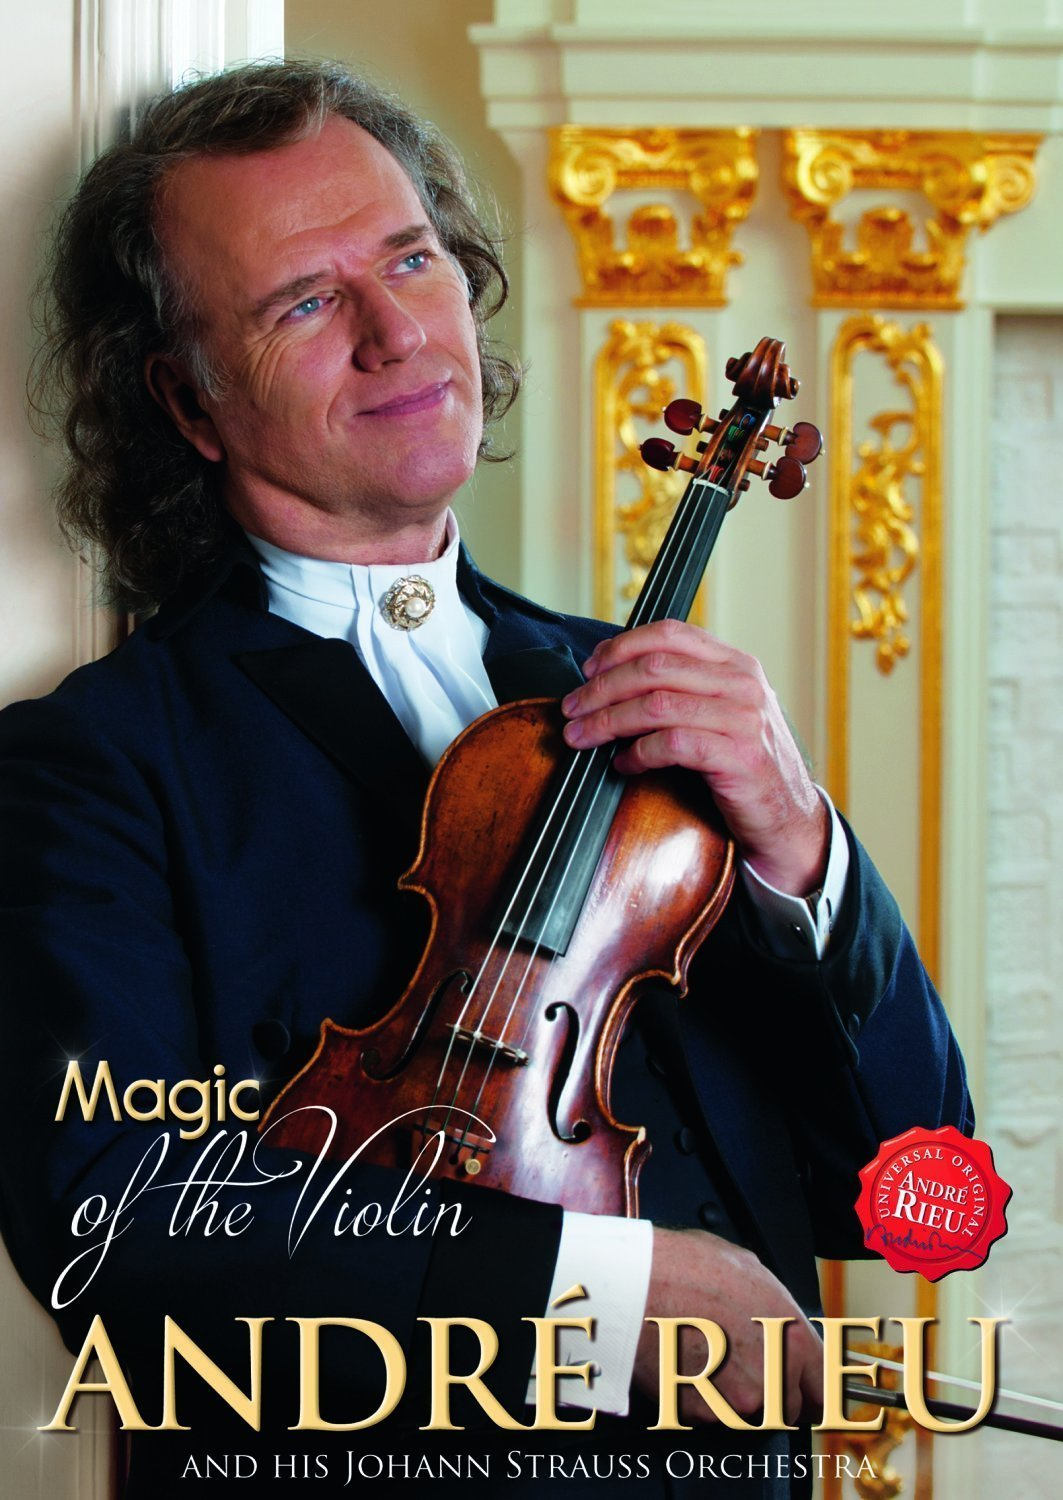 Andre Rieu - Magic Of The Violin [2015] (DVD)